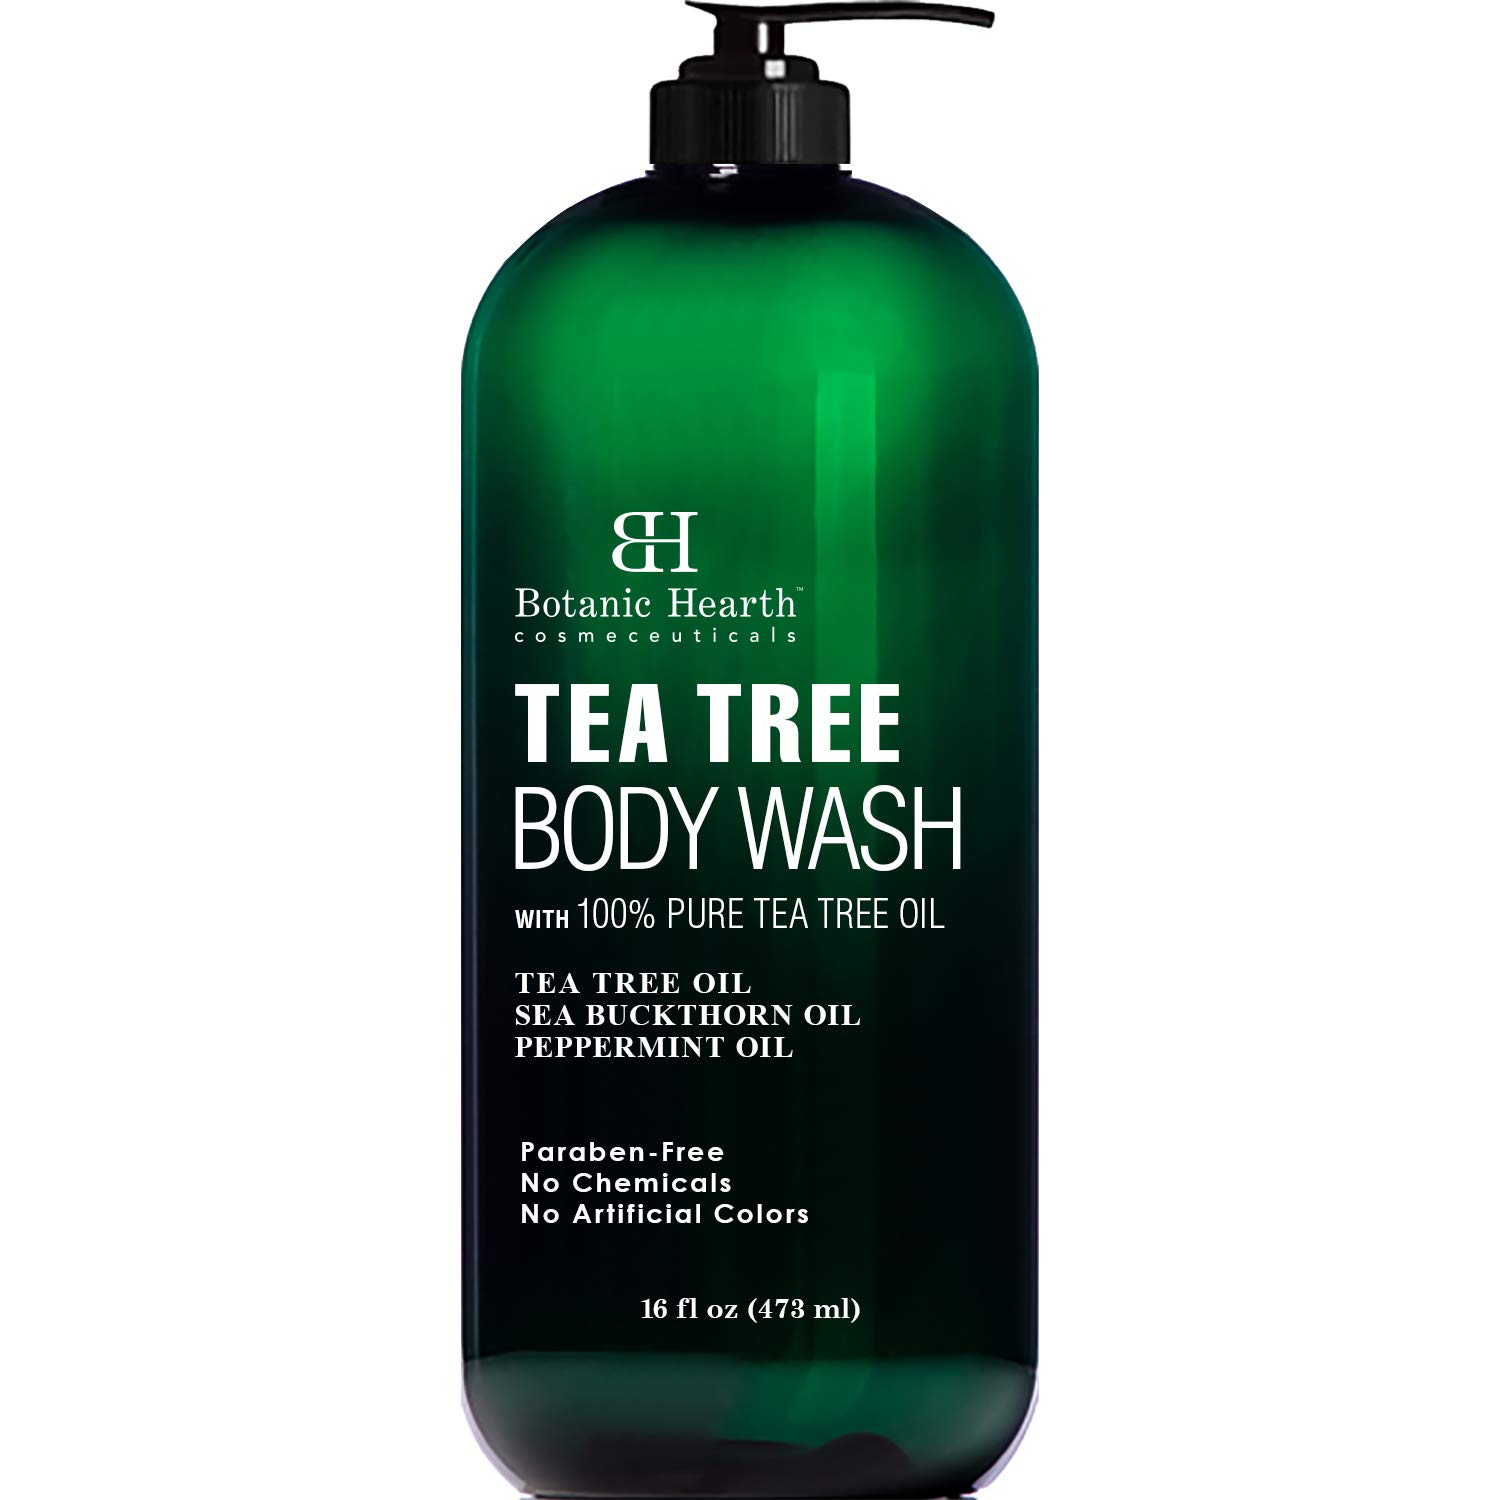 BOTANIC HEARTH Tea Tree Body Wash, Helps Nail Fungus, Athletes Foot, Ringworms, Jock Itch, Acne, Eczema & Body Odor, Soothes Itching & Promotes Healthy Skin and Feet, Naturally Scented, 16 fl oz by Botanic Hearth